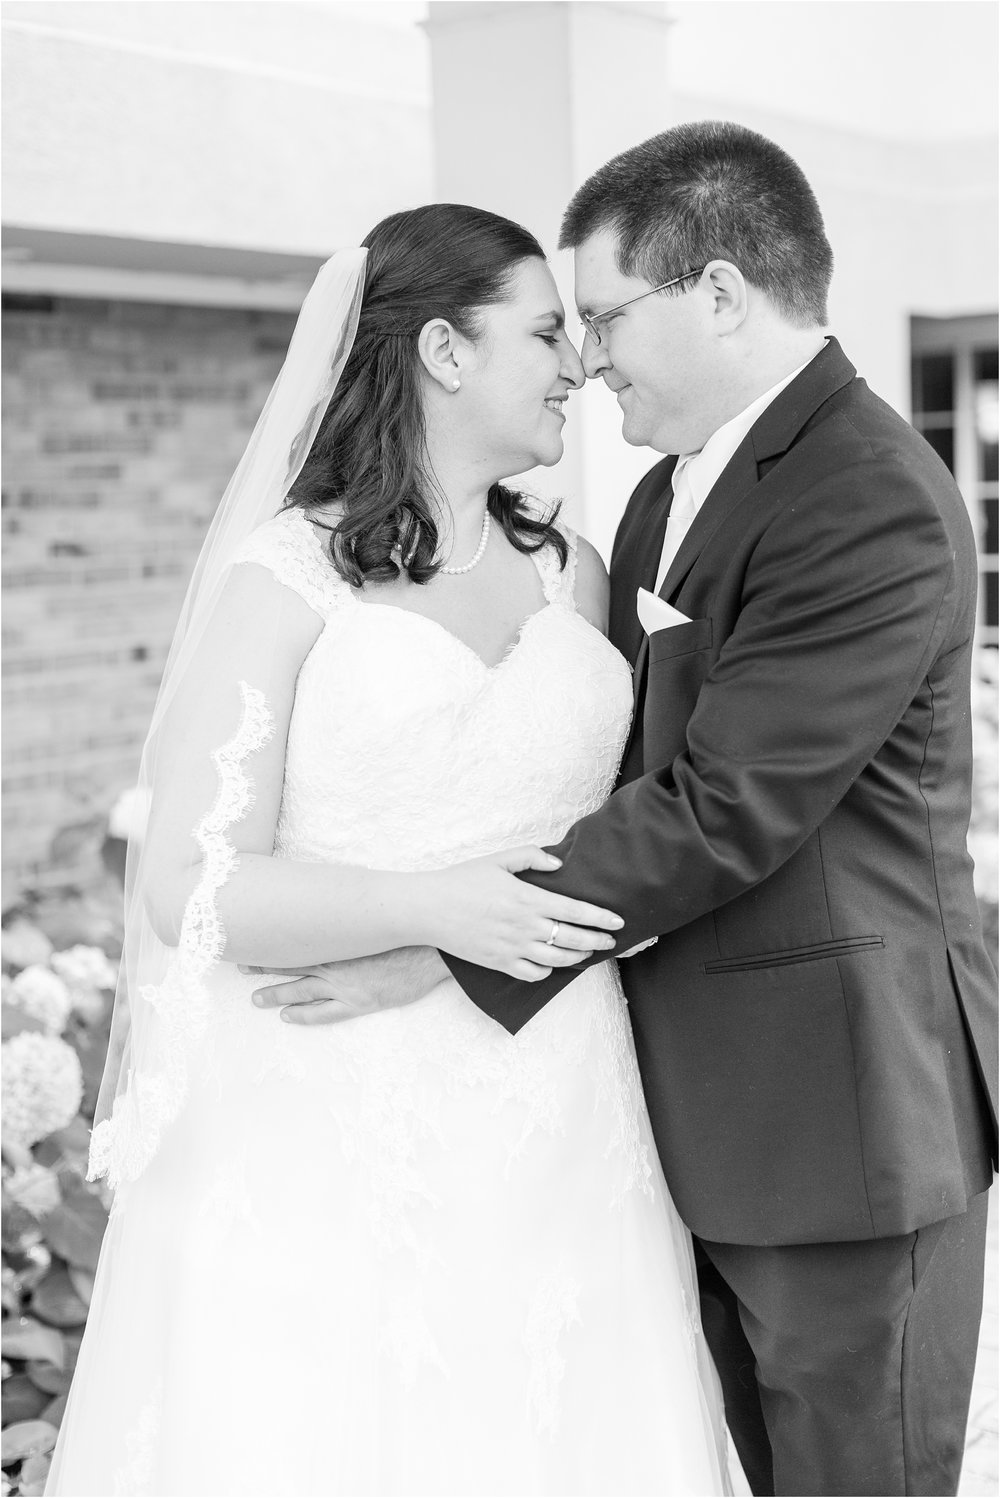 modern-and-elegant-wedding-photos-at-kensington-court-in-ann-arbor-mi-by-courtney-carolyn-photography_0075.jpg